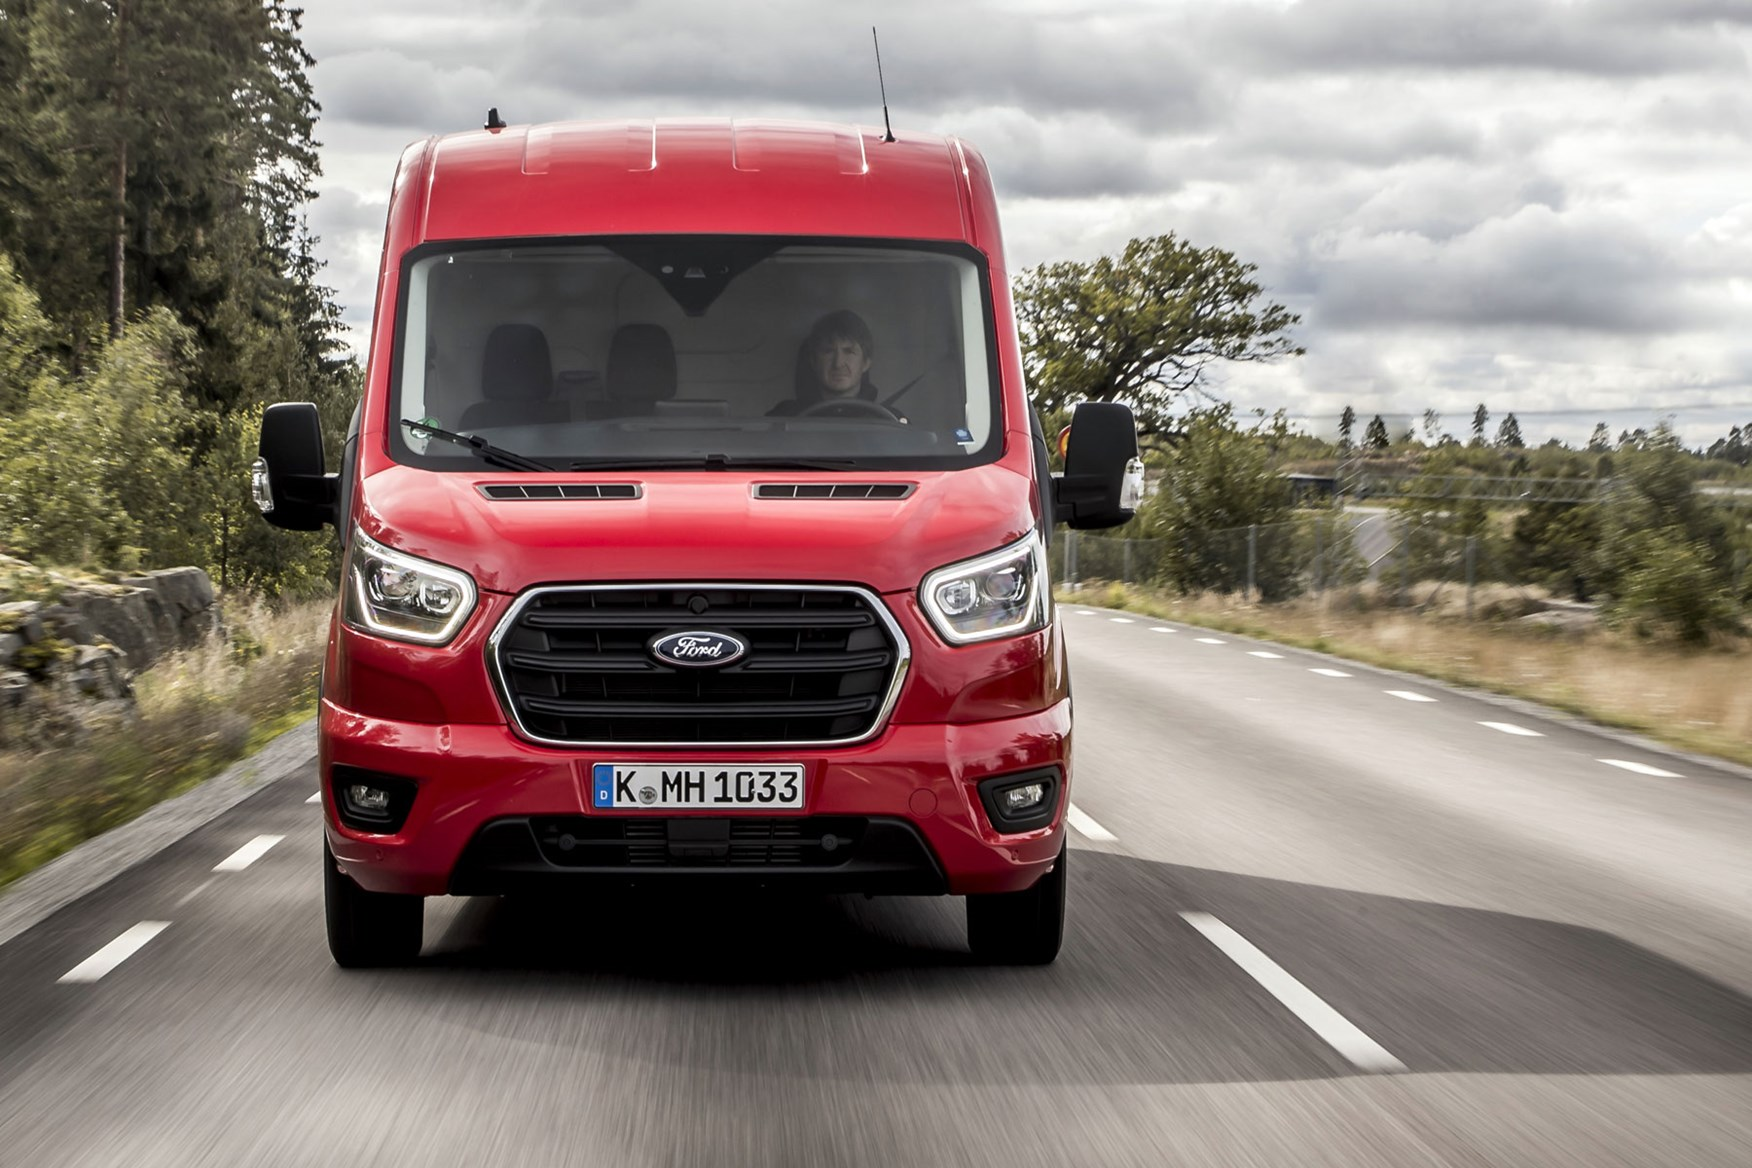 Ford Transit review - 2019 facelift model, dead-on front view, red, Limited